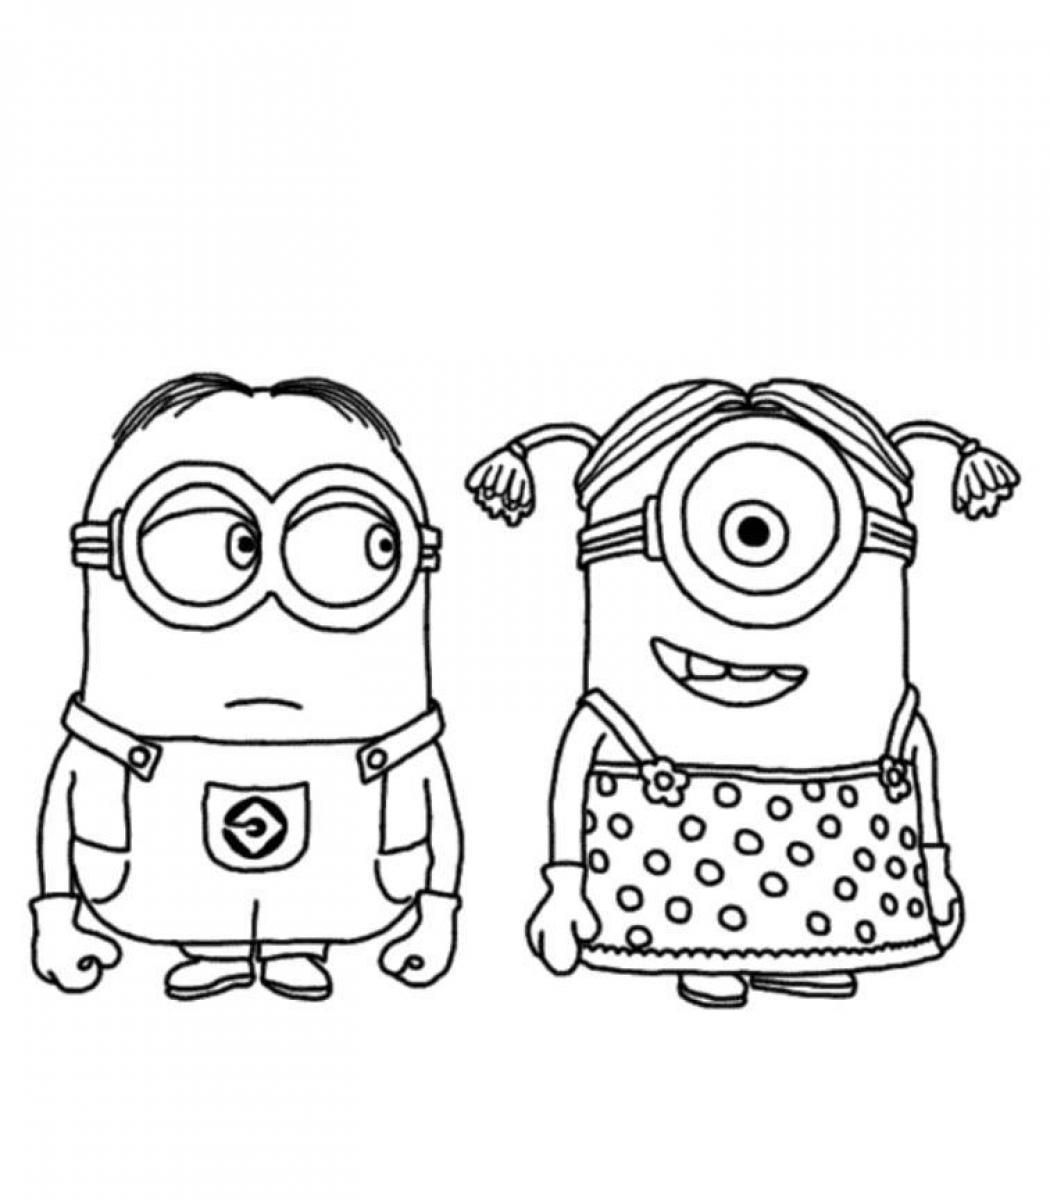 On online coloring minion - Minion Coloring Pages Printable Minion Coloring Pages Free Minion Coloring Pages Online Minion